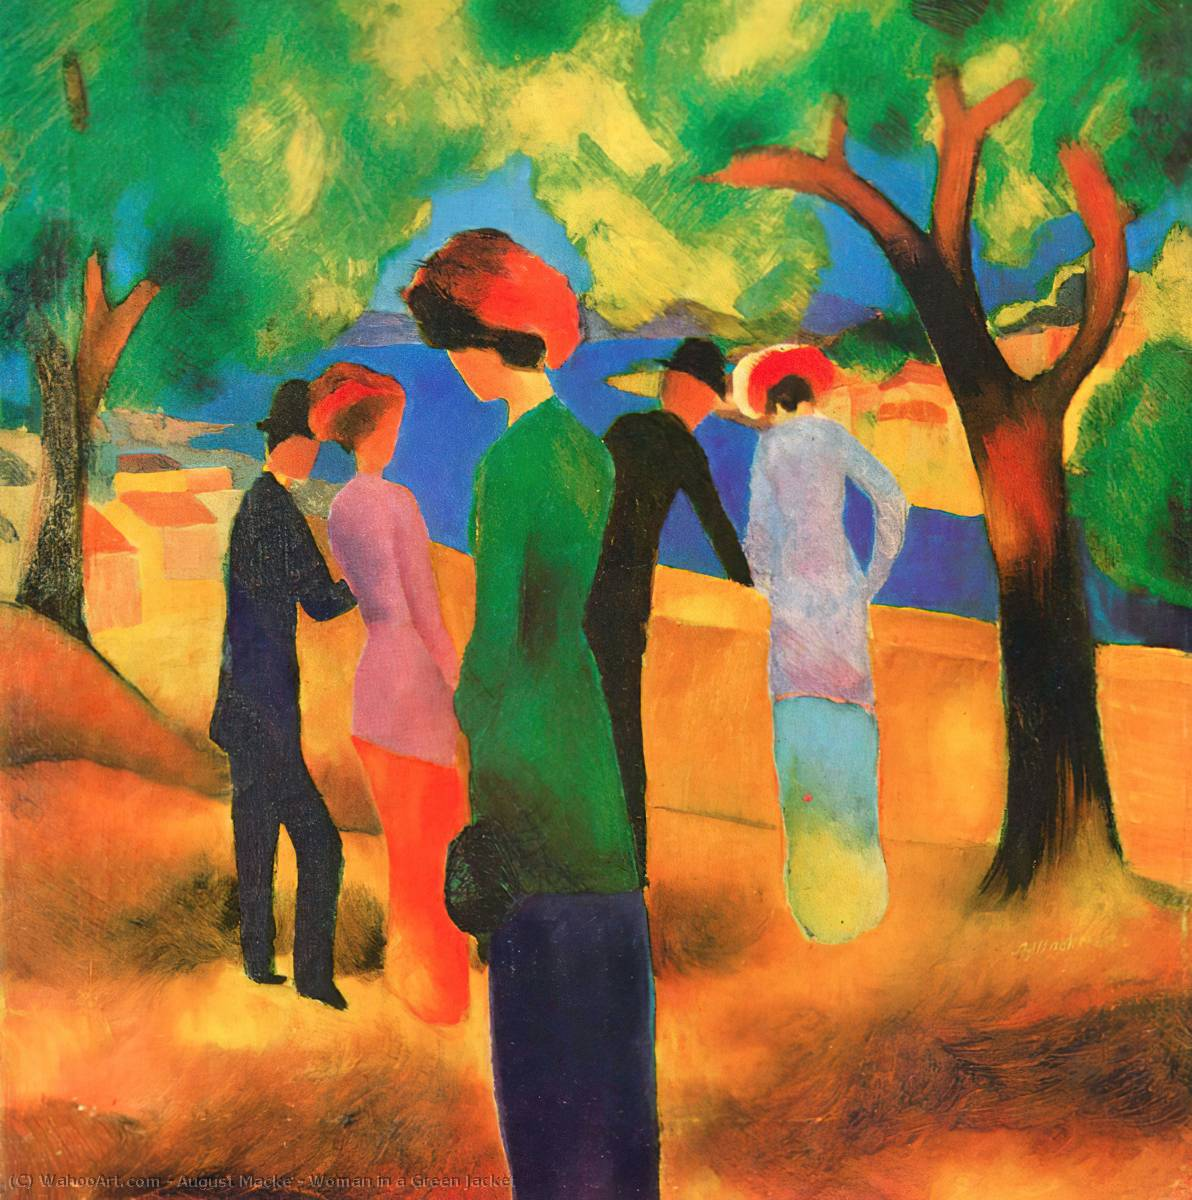 femme, vert, veste, 1913 de August Macke (1887-1914, Germany) | Reproductions De Peintures August Macke | WahooArt.com